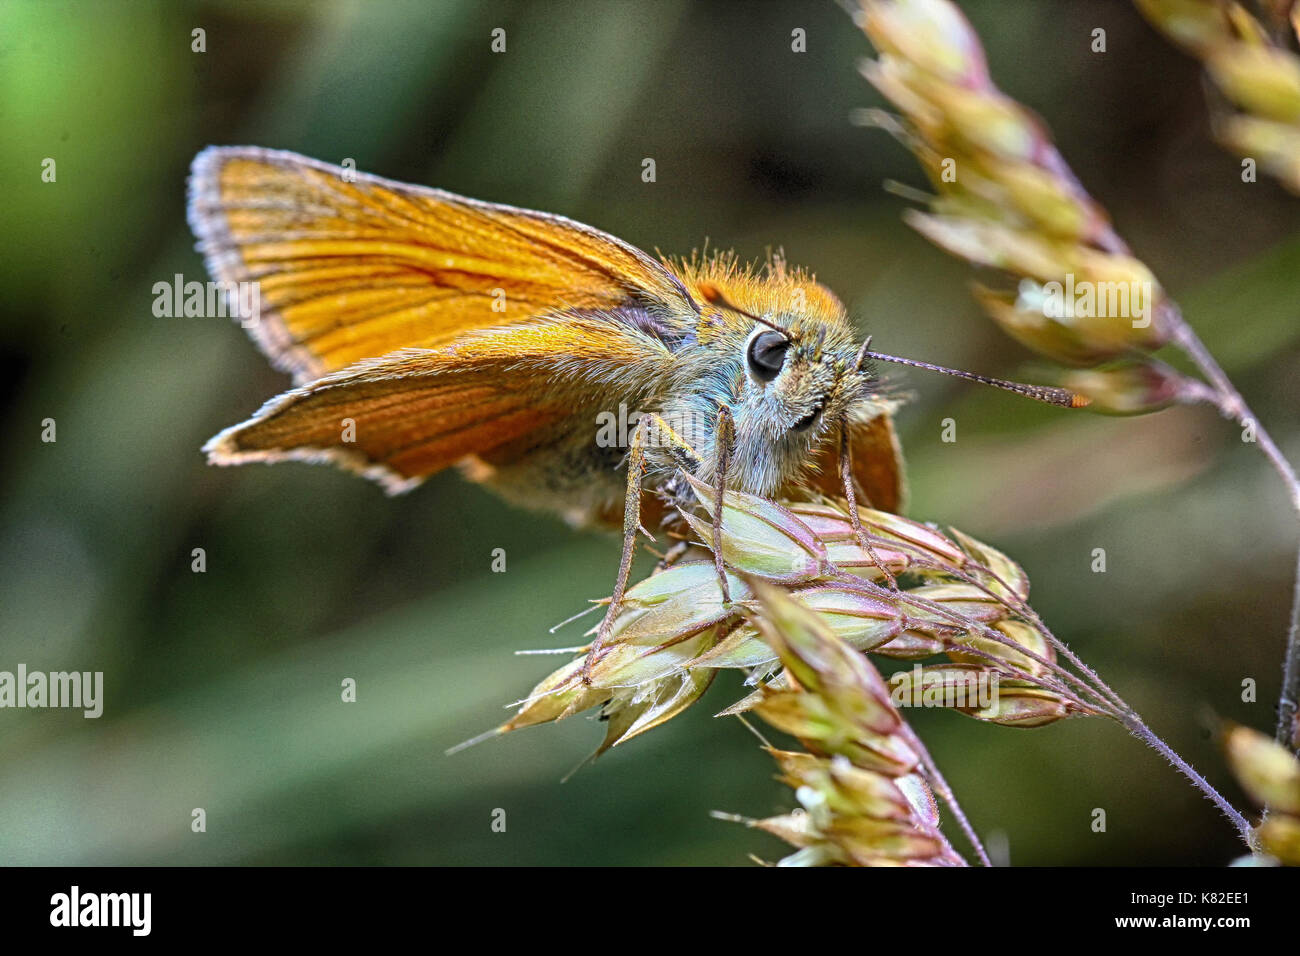 Insekten in Flug, Insects in flight , - Stock Image